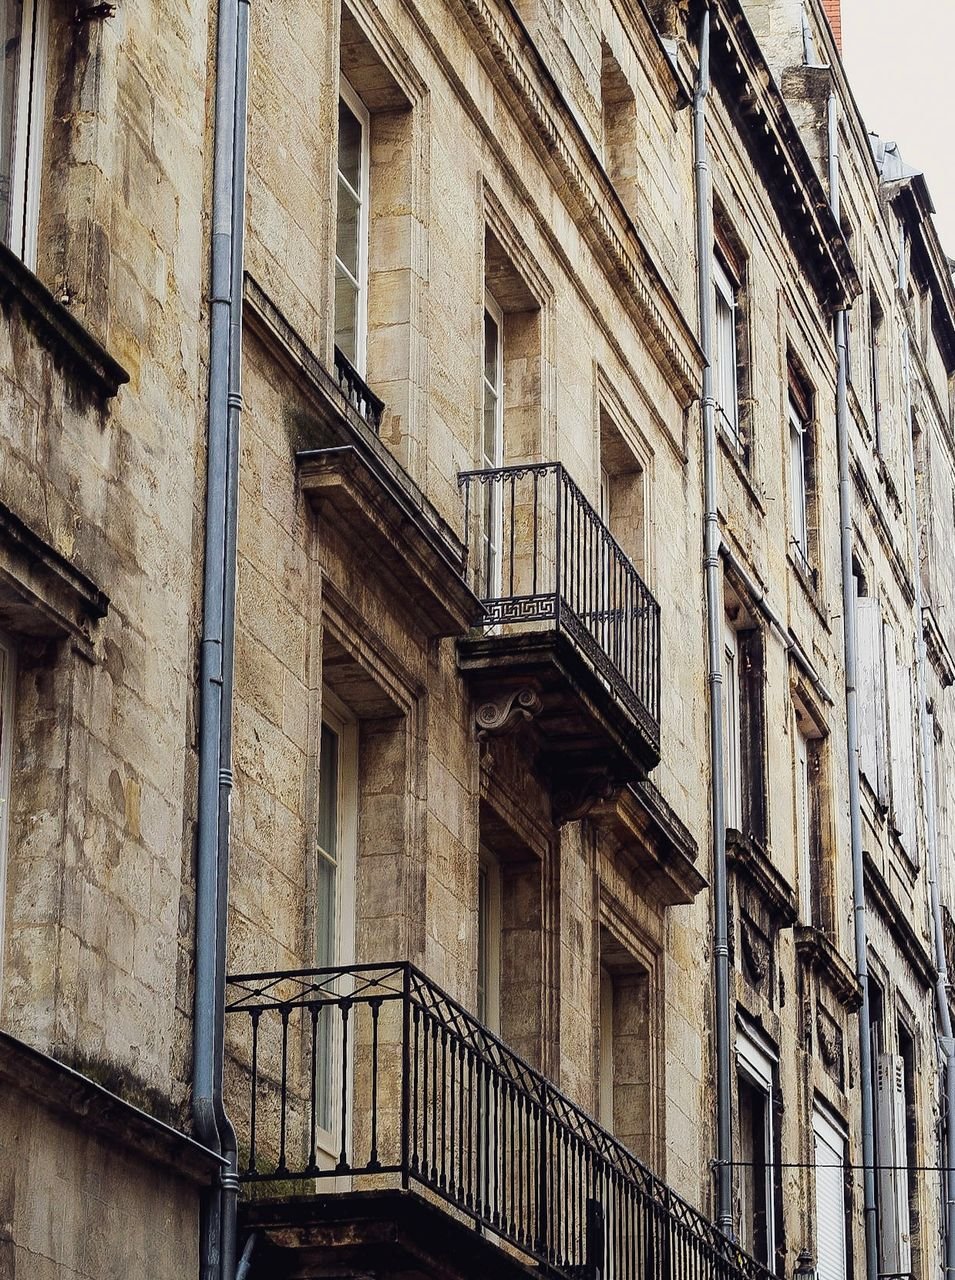 architecture, built structure, low angle view, building exterior, building, no people, window, day, railing, old, residential district, outdoors, city, staircase, full frame, backgrounds, fire escape, pattern, balcony, the past, apartment